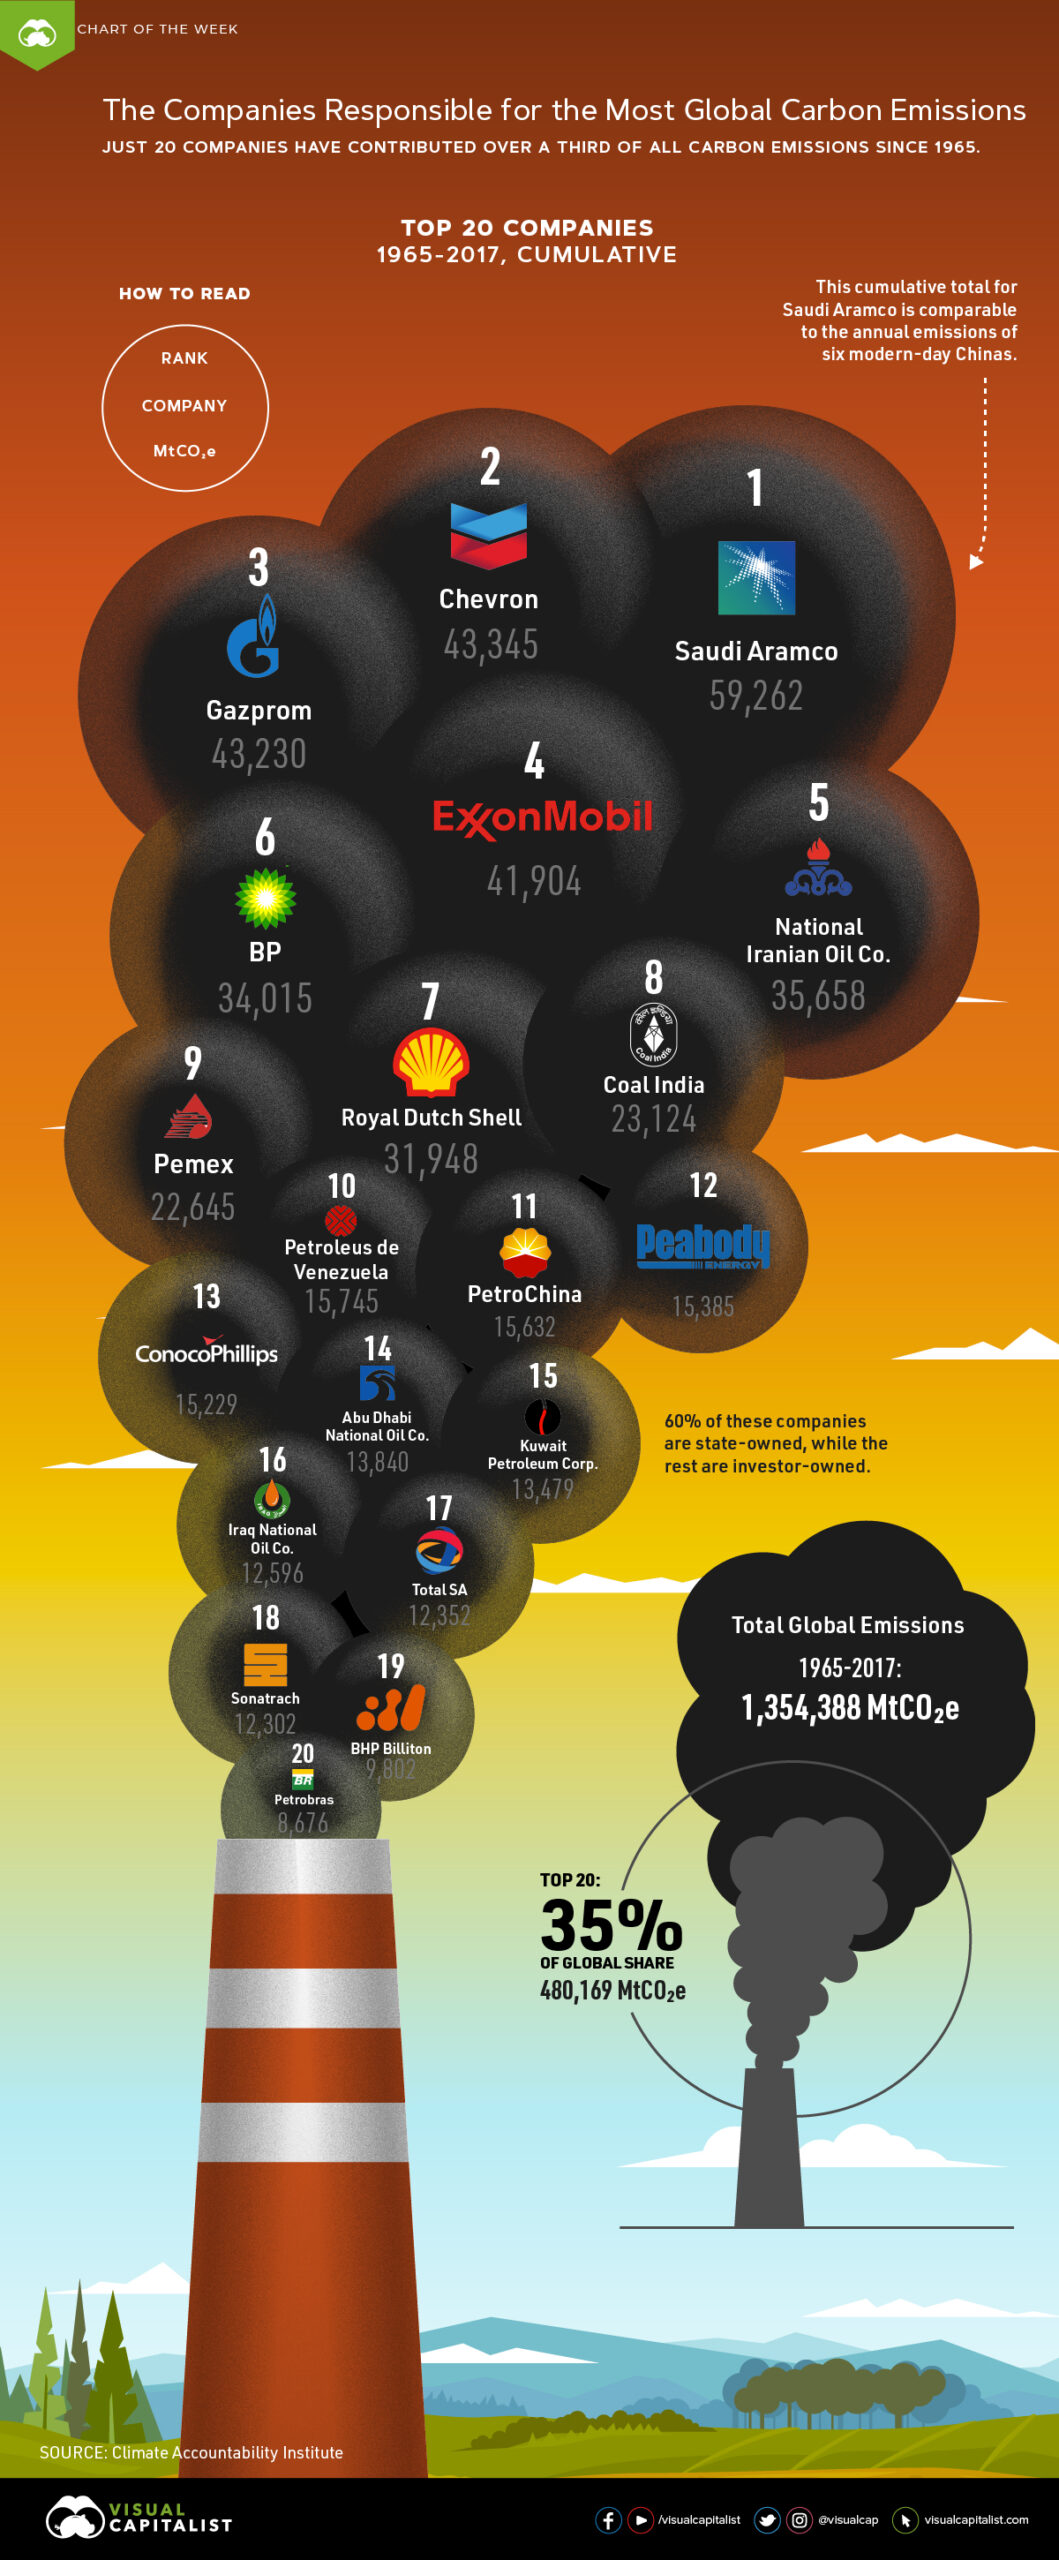 A graphic depicting carbon emissions rising from a smokestack. Within the cloud of emissions, the top 20 companies responsible for the most carbon emissions are listed. 1 - Saudi Aramco. 2 - Chevron. 3 - Gazprom. 4 - Exxon Mobil. 5 - National Iranian Oil Co. 6 - BP. 7 - Royal Dutch Shell. 8 - Coal India. 9 - Pemex. 10 - Petroleus de Venezuela. 11 - Petro China. 12 - Peabody. 13 - Conoco Phillips. 14 - Abu Dhabi National Oil Co. 15 - Kuwait Petroleum Corp. 16 - Iraq National Oil Co. 17 - Total SA. 18 - Sonatrach. 19 - BHP Billiton. 20 - Petrobras. These 20 companies are responsible for 35% of all global carbon emissions.